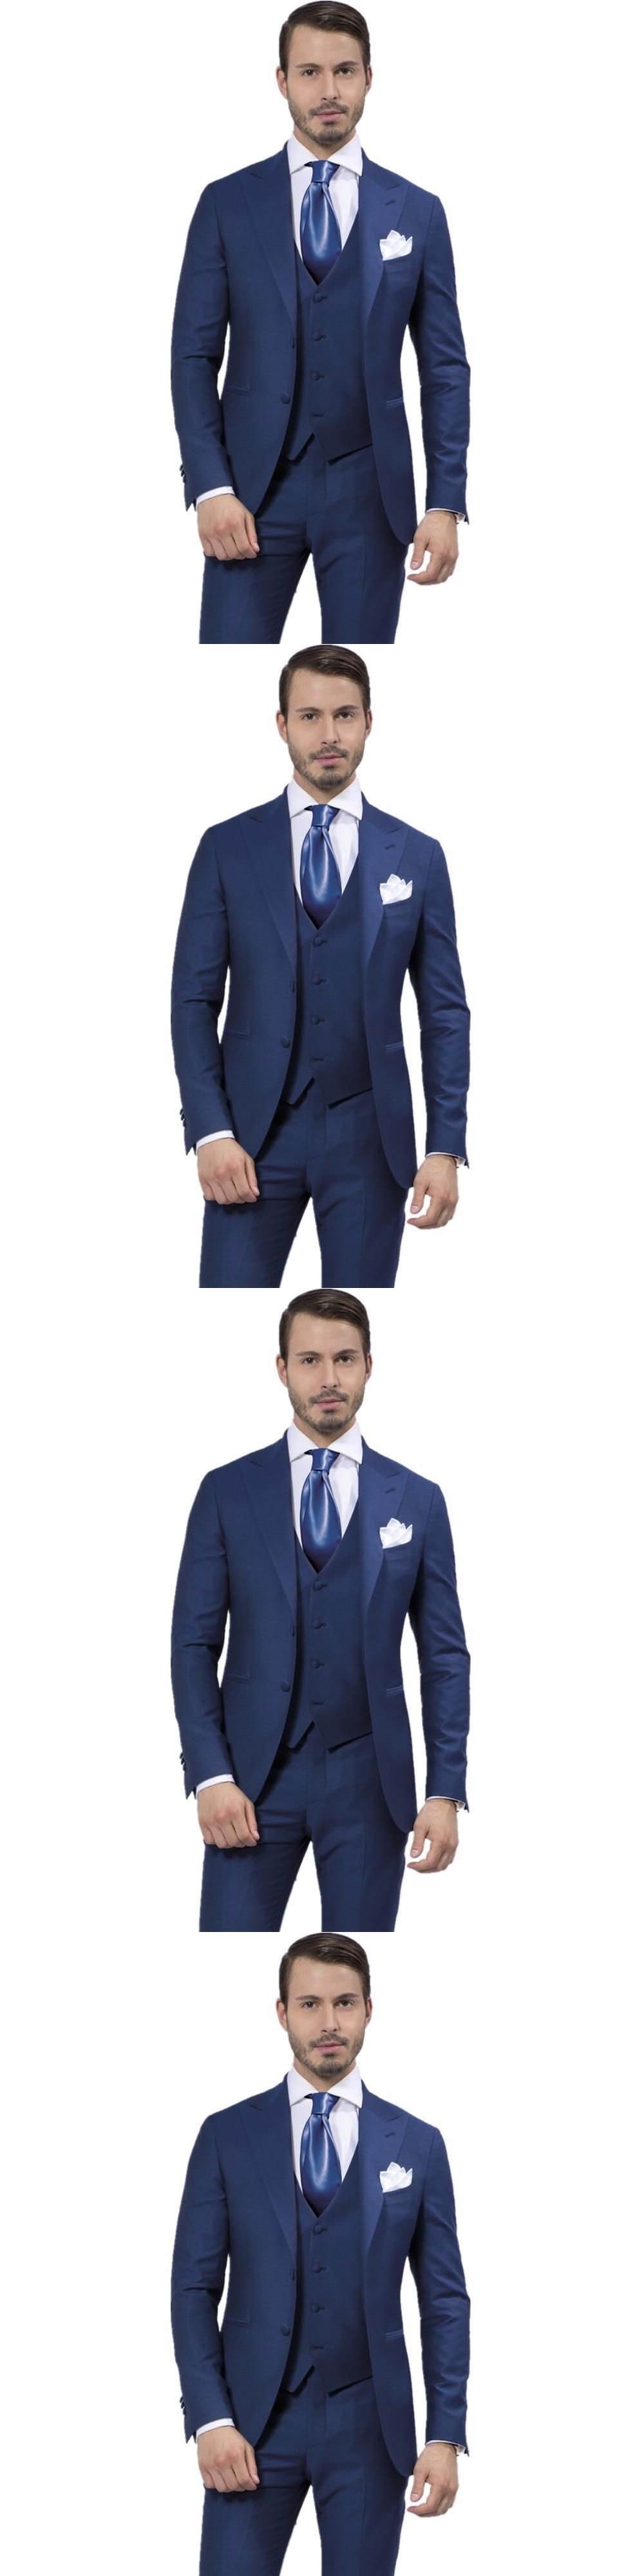 Pieces mens suits fashion design navy blue wedding groom tuxedos